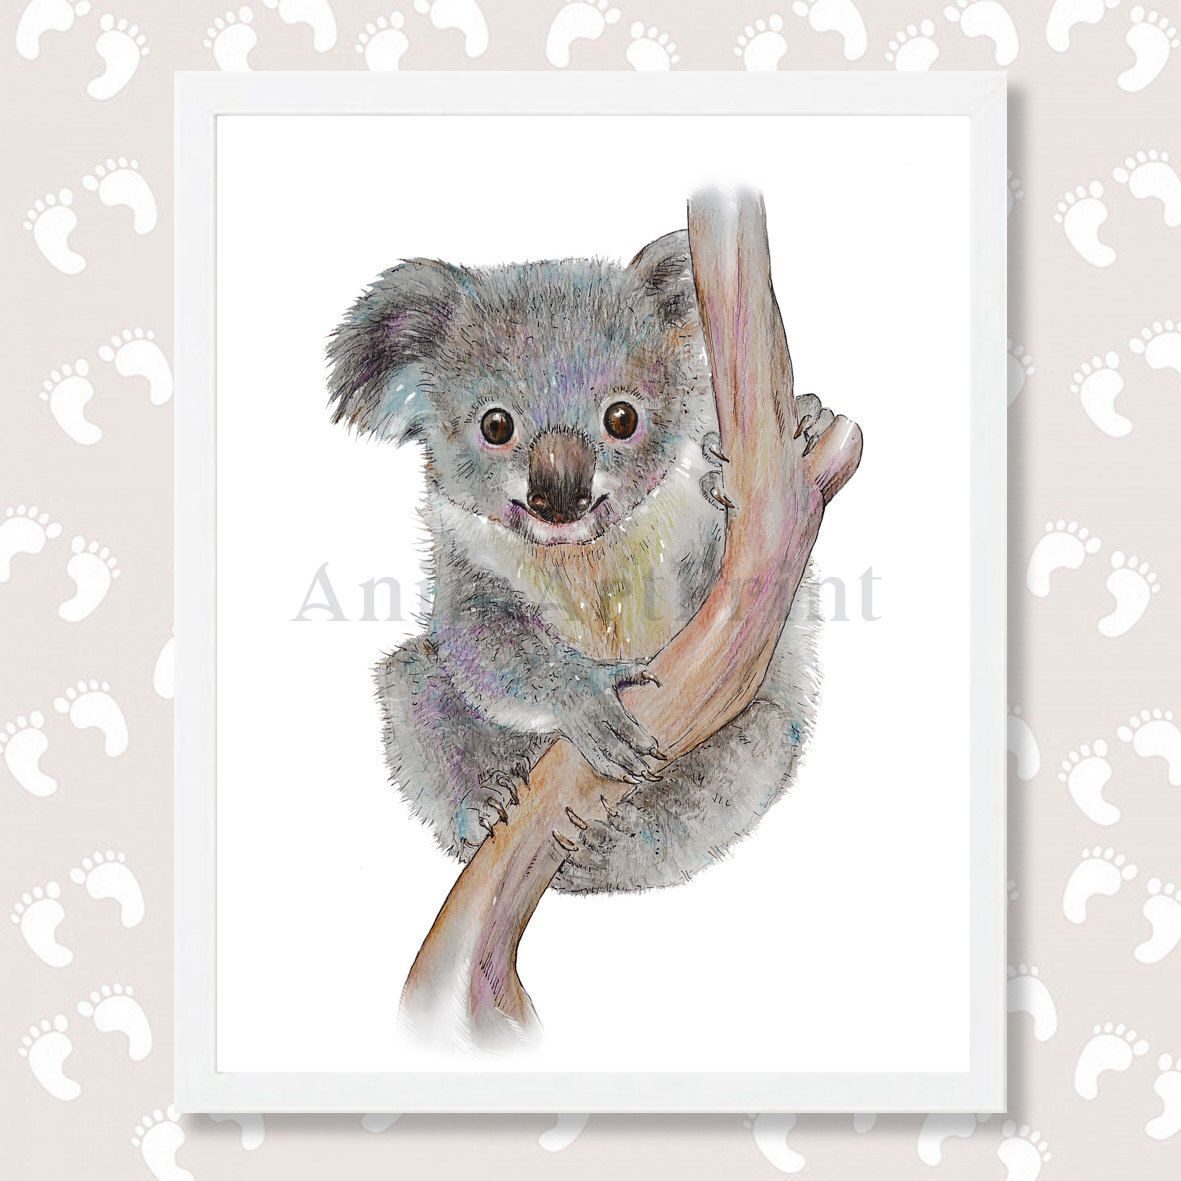 Koala Print Koala Bear Art Koala Watercolor Painting Nursery Decor